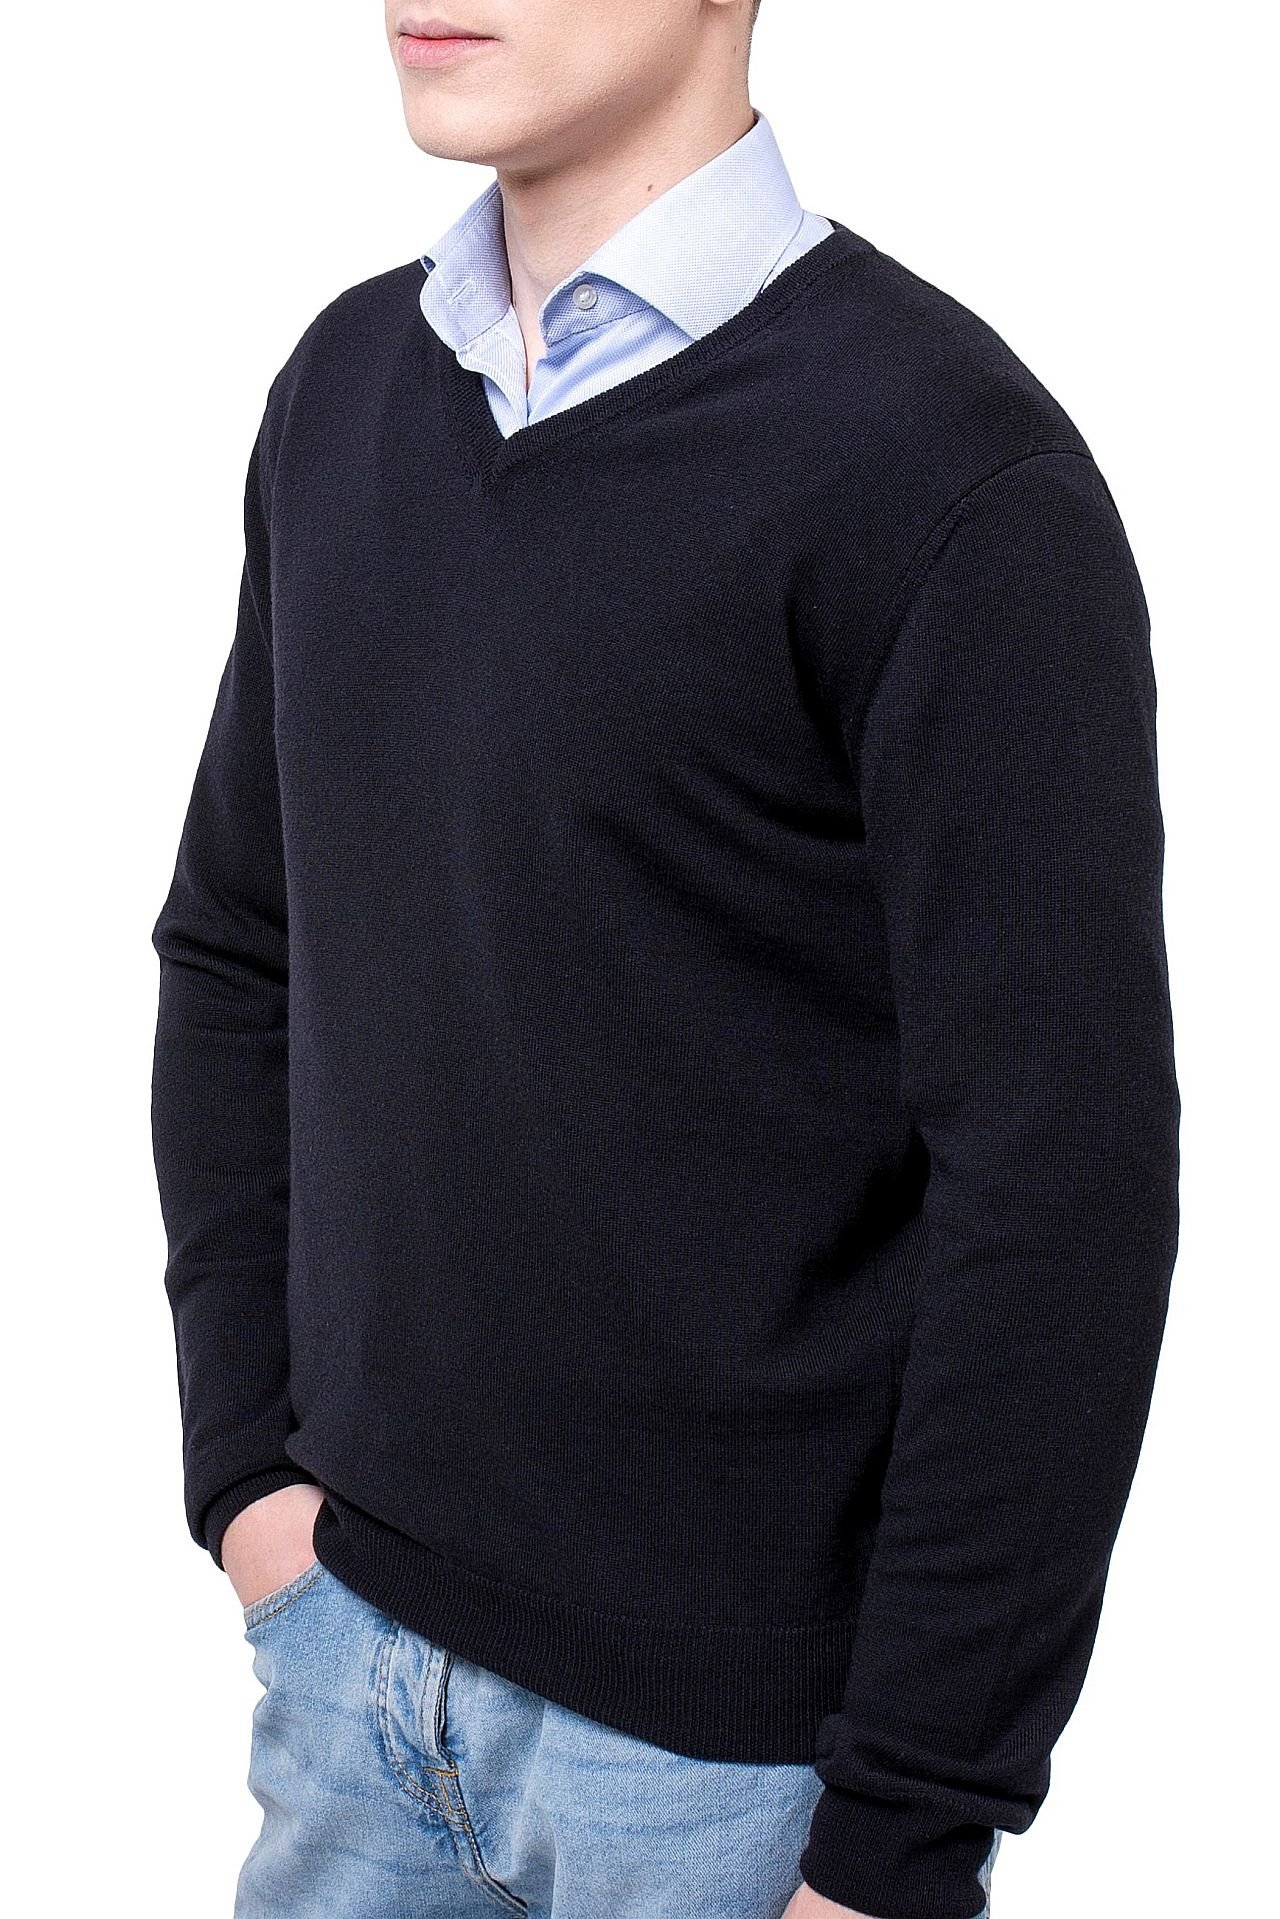 KNITTONS Men's 100% Merino Wool Extra Fine Classic V-Neck Sweater Long Sleeve Pullover (X-Large, Black)